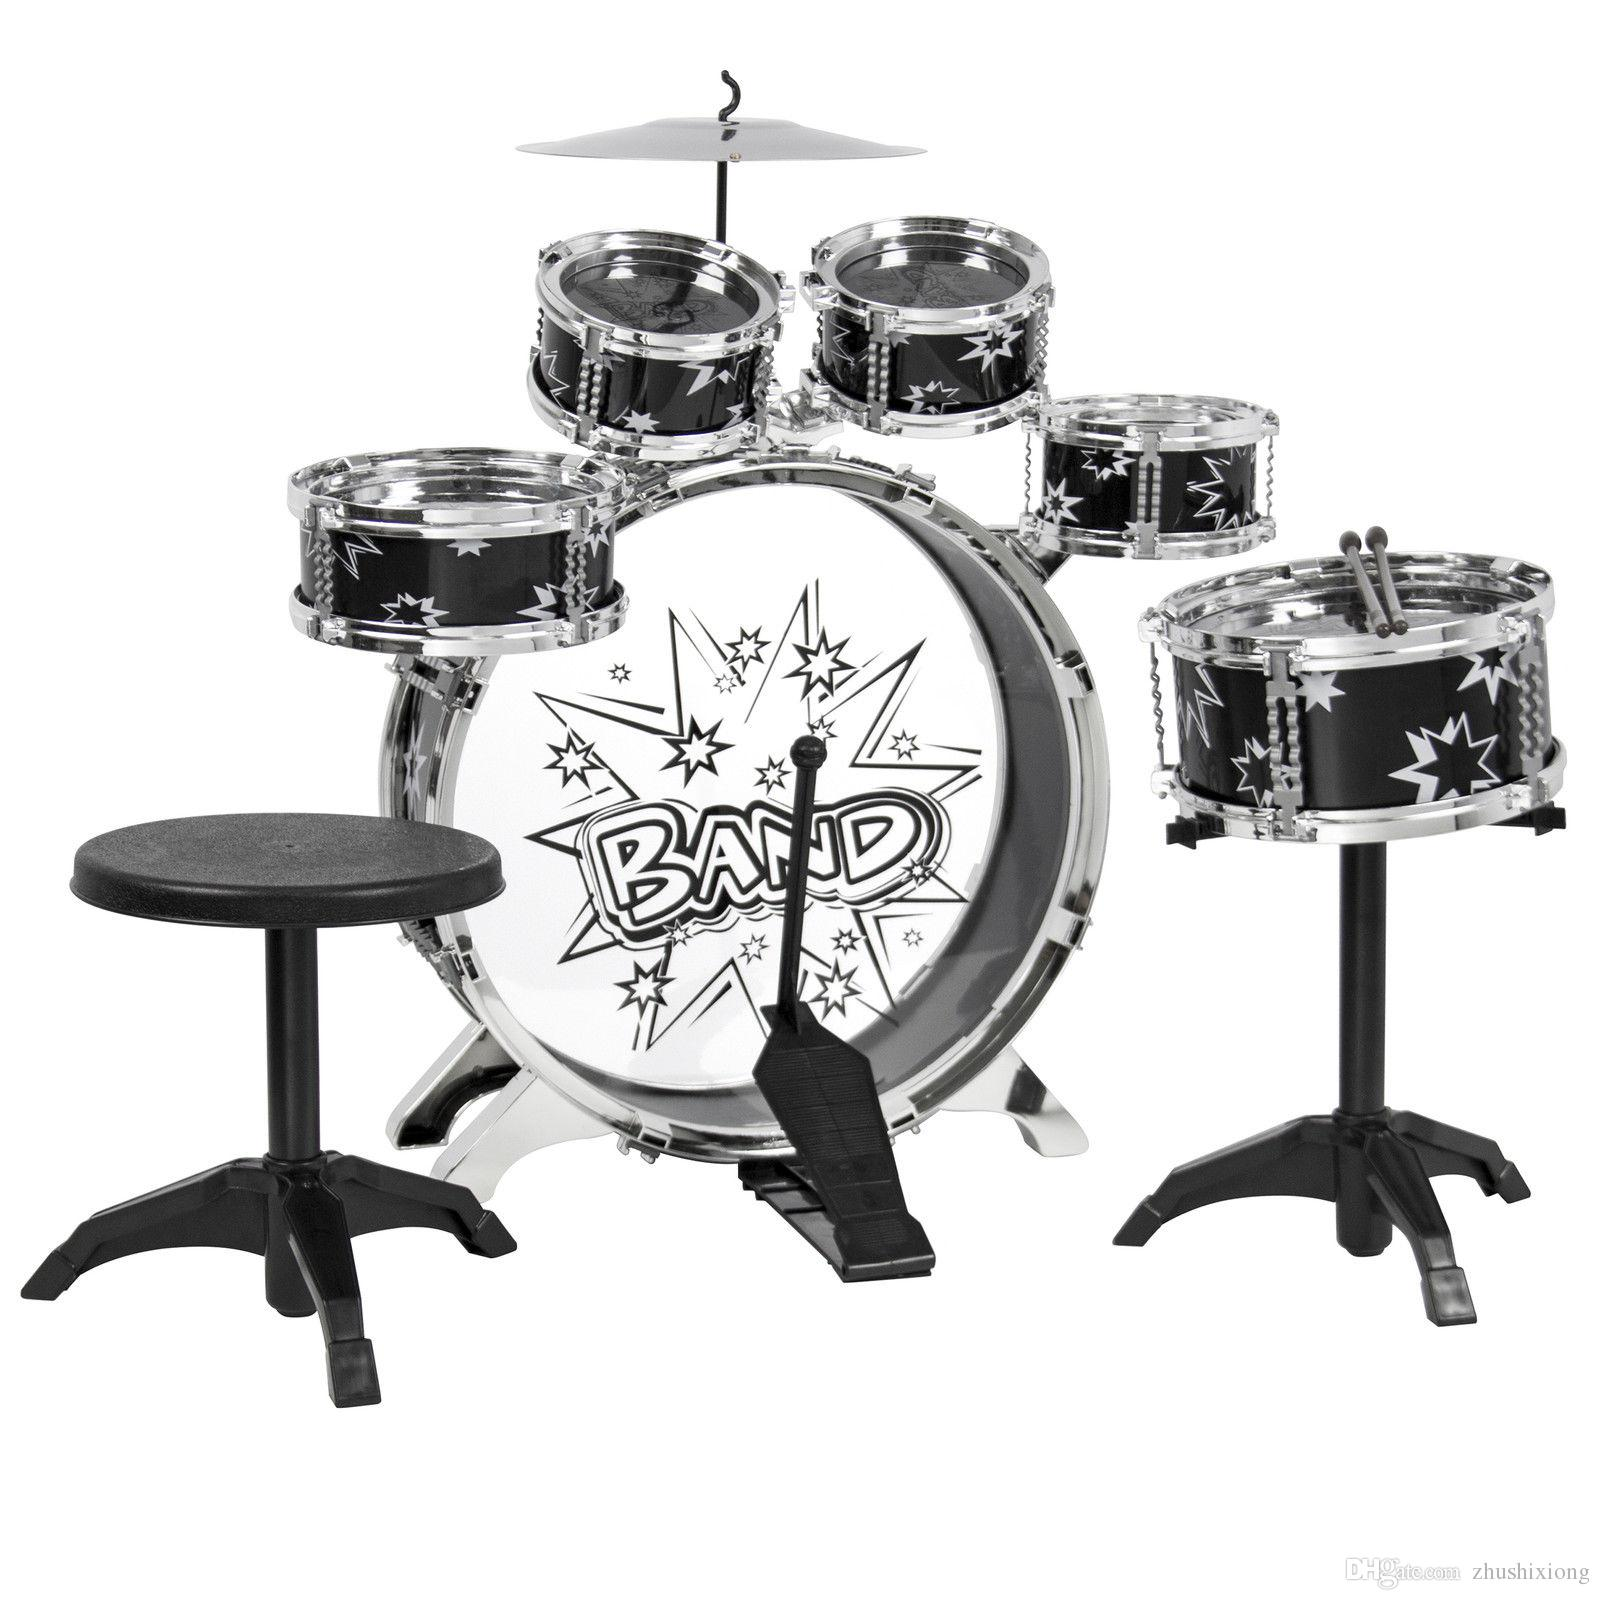 2019 Kids Drum Set Kids Toy With Cymbals Stands Throne Black Silver